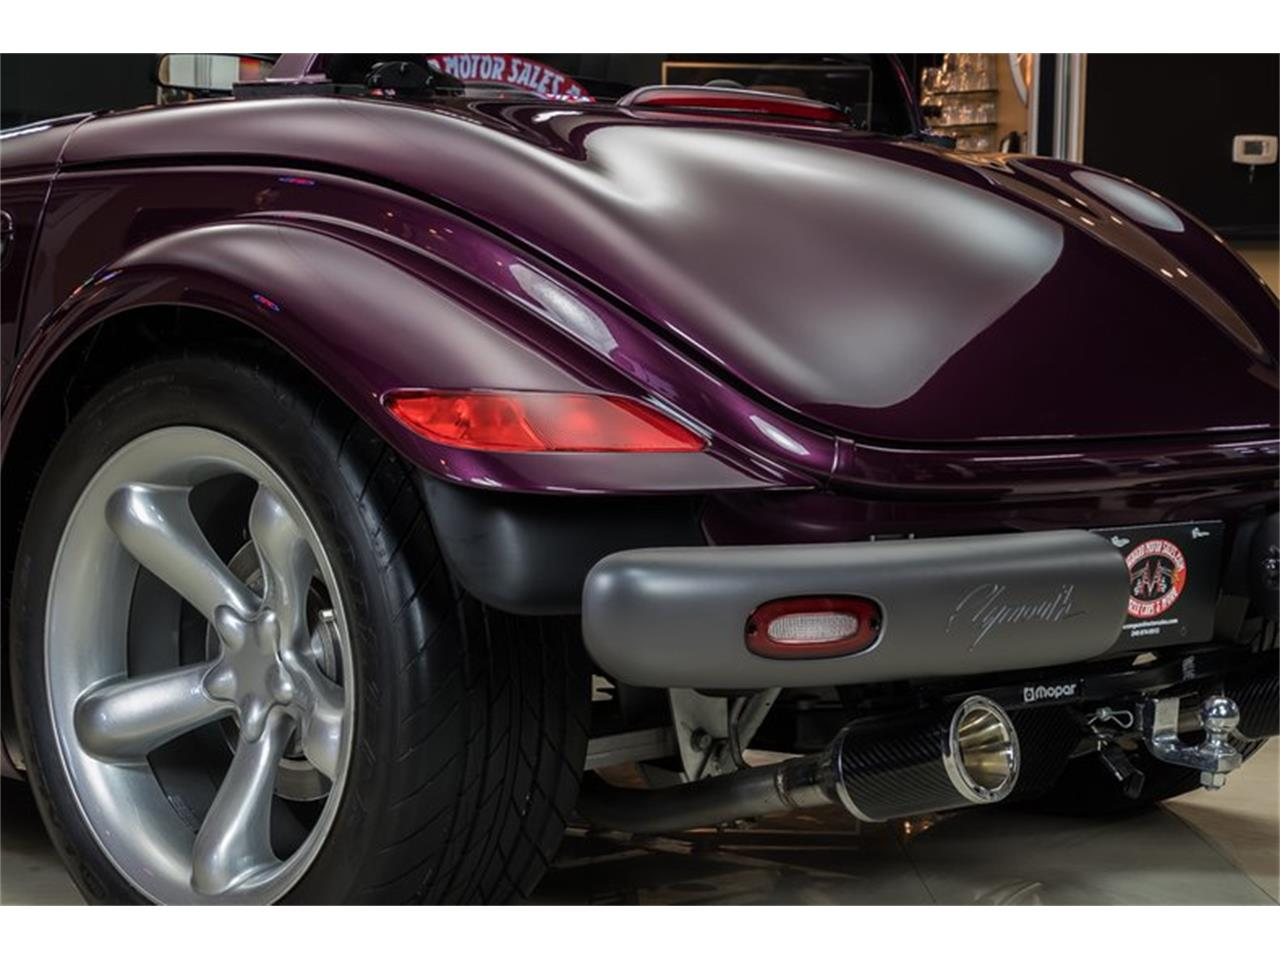 Large Picture of '97 Plymouth Prowler located in Michigan - $42,900.00 Offered by Vanguard Motor Sales - PNI7